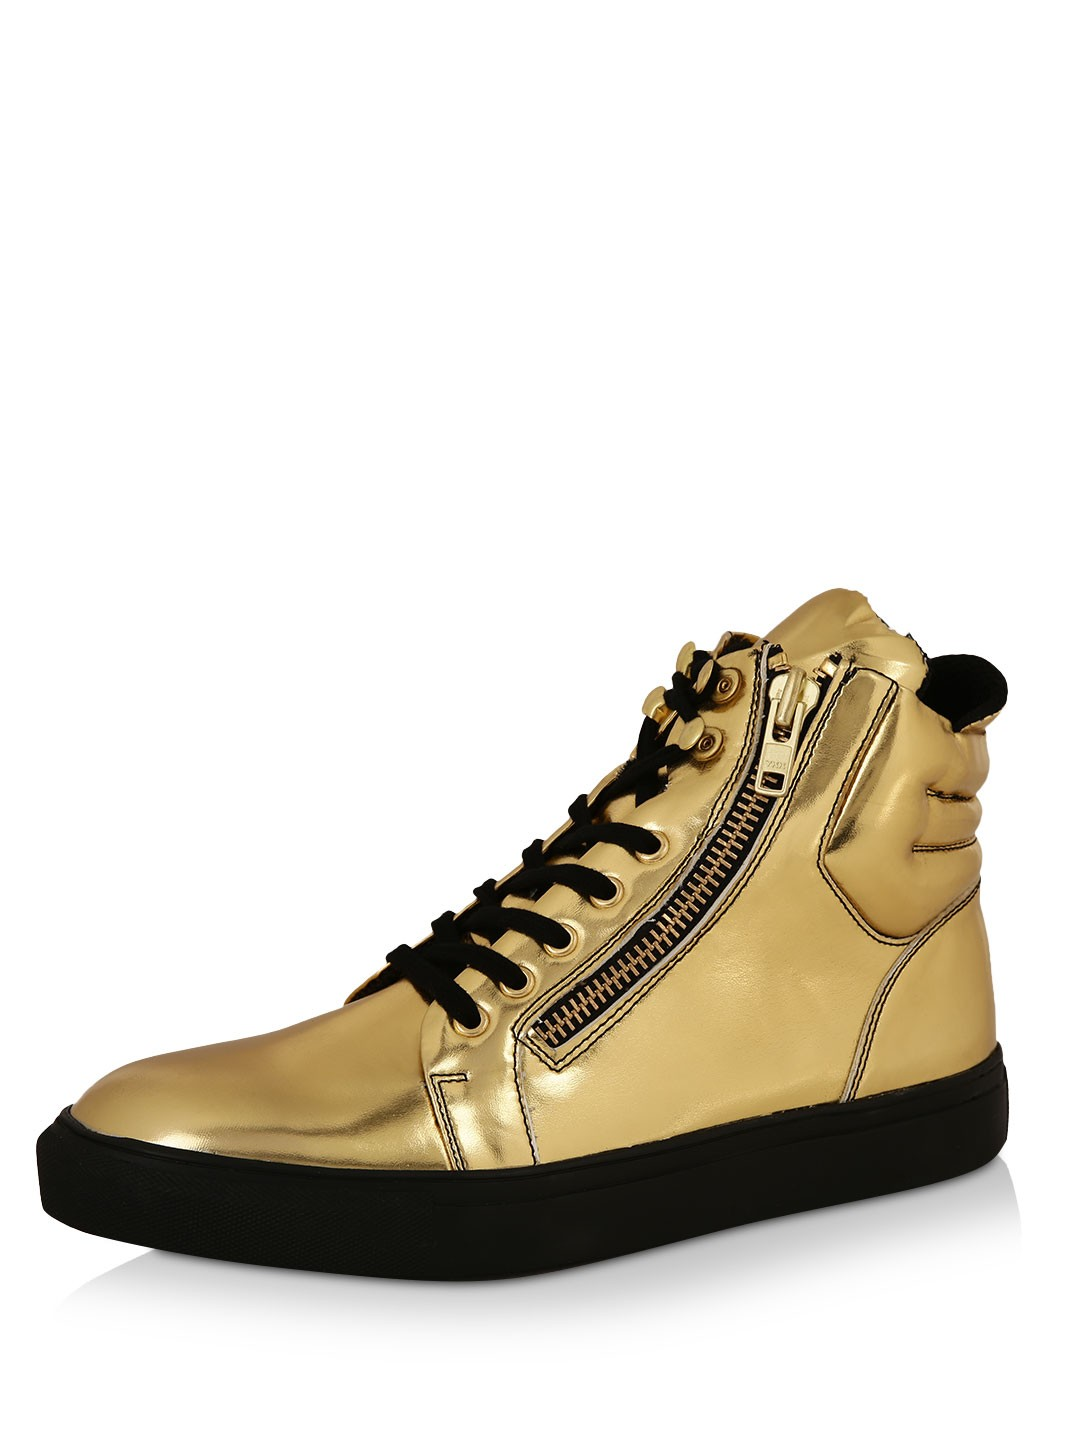 MANISH ARORA FOR KOOVS Gold Zip Detail Hi Top As Seen On Karan Kundra 1